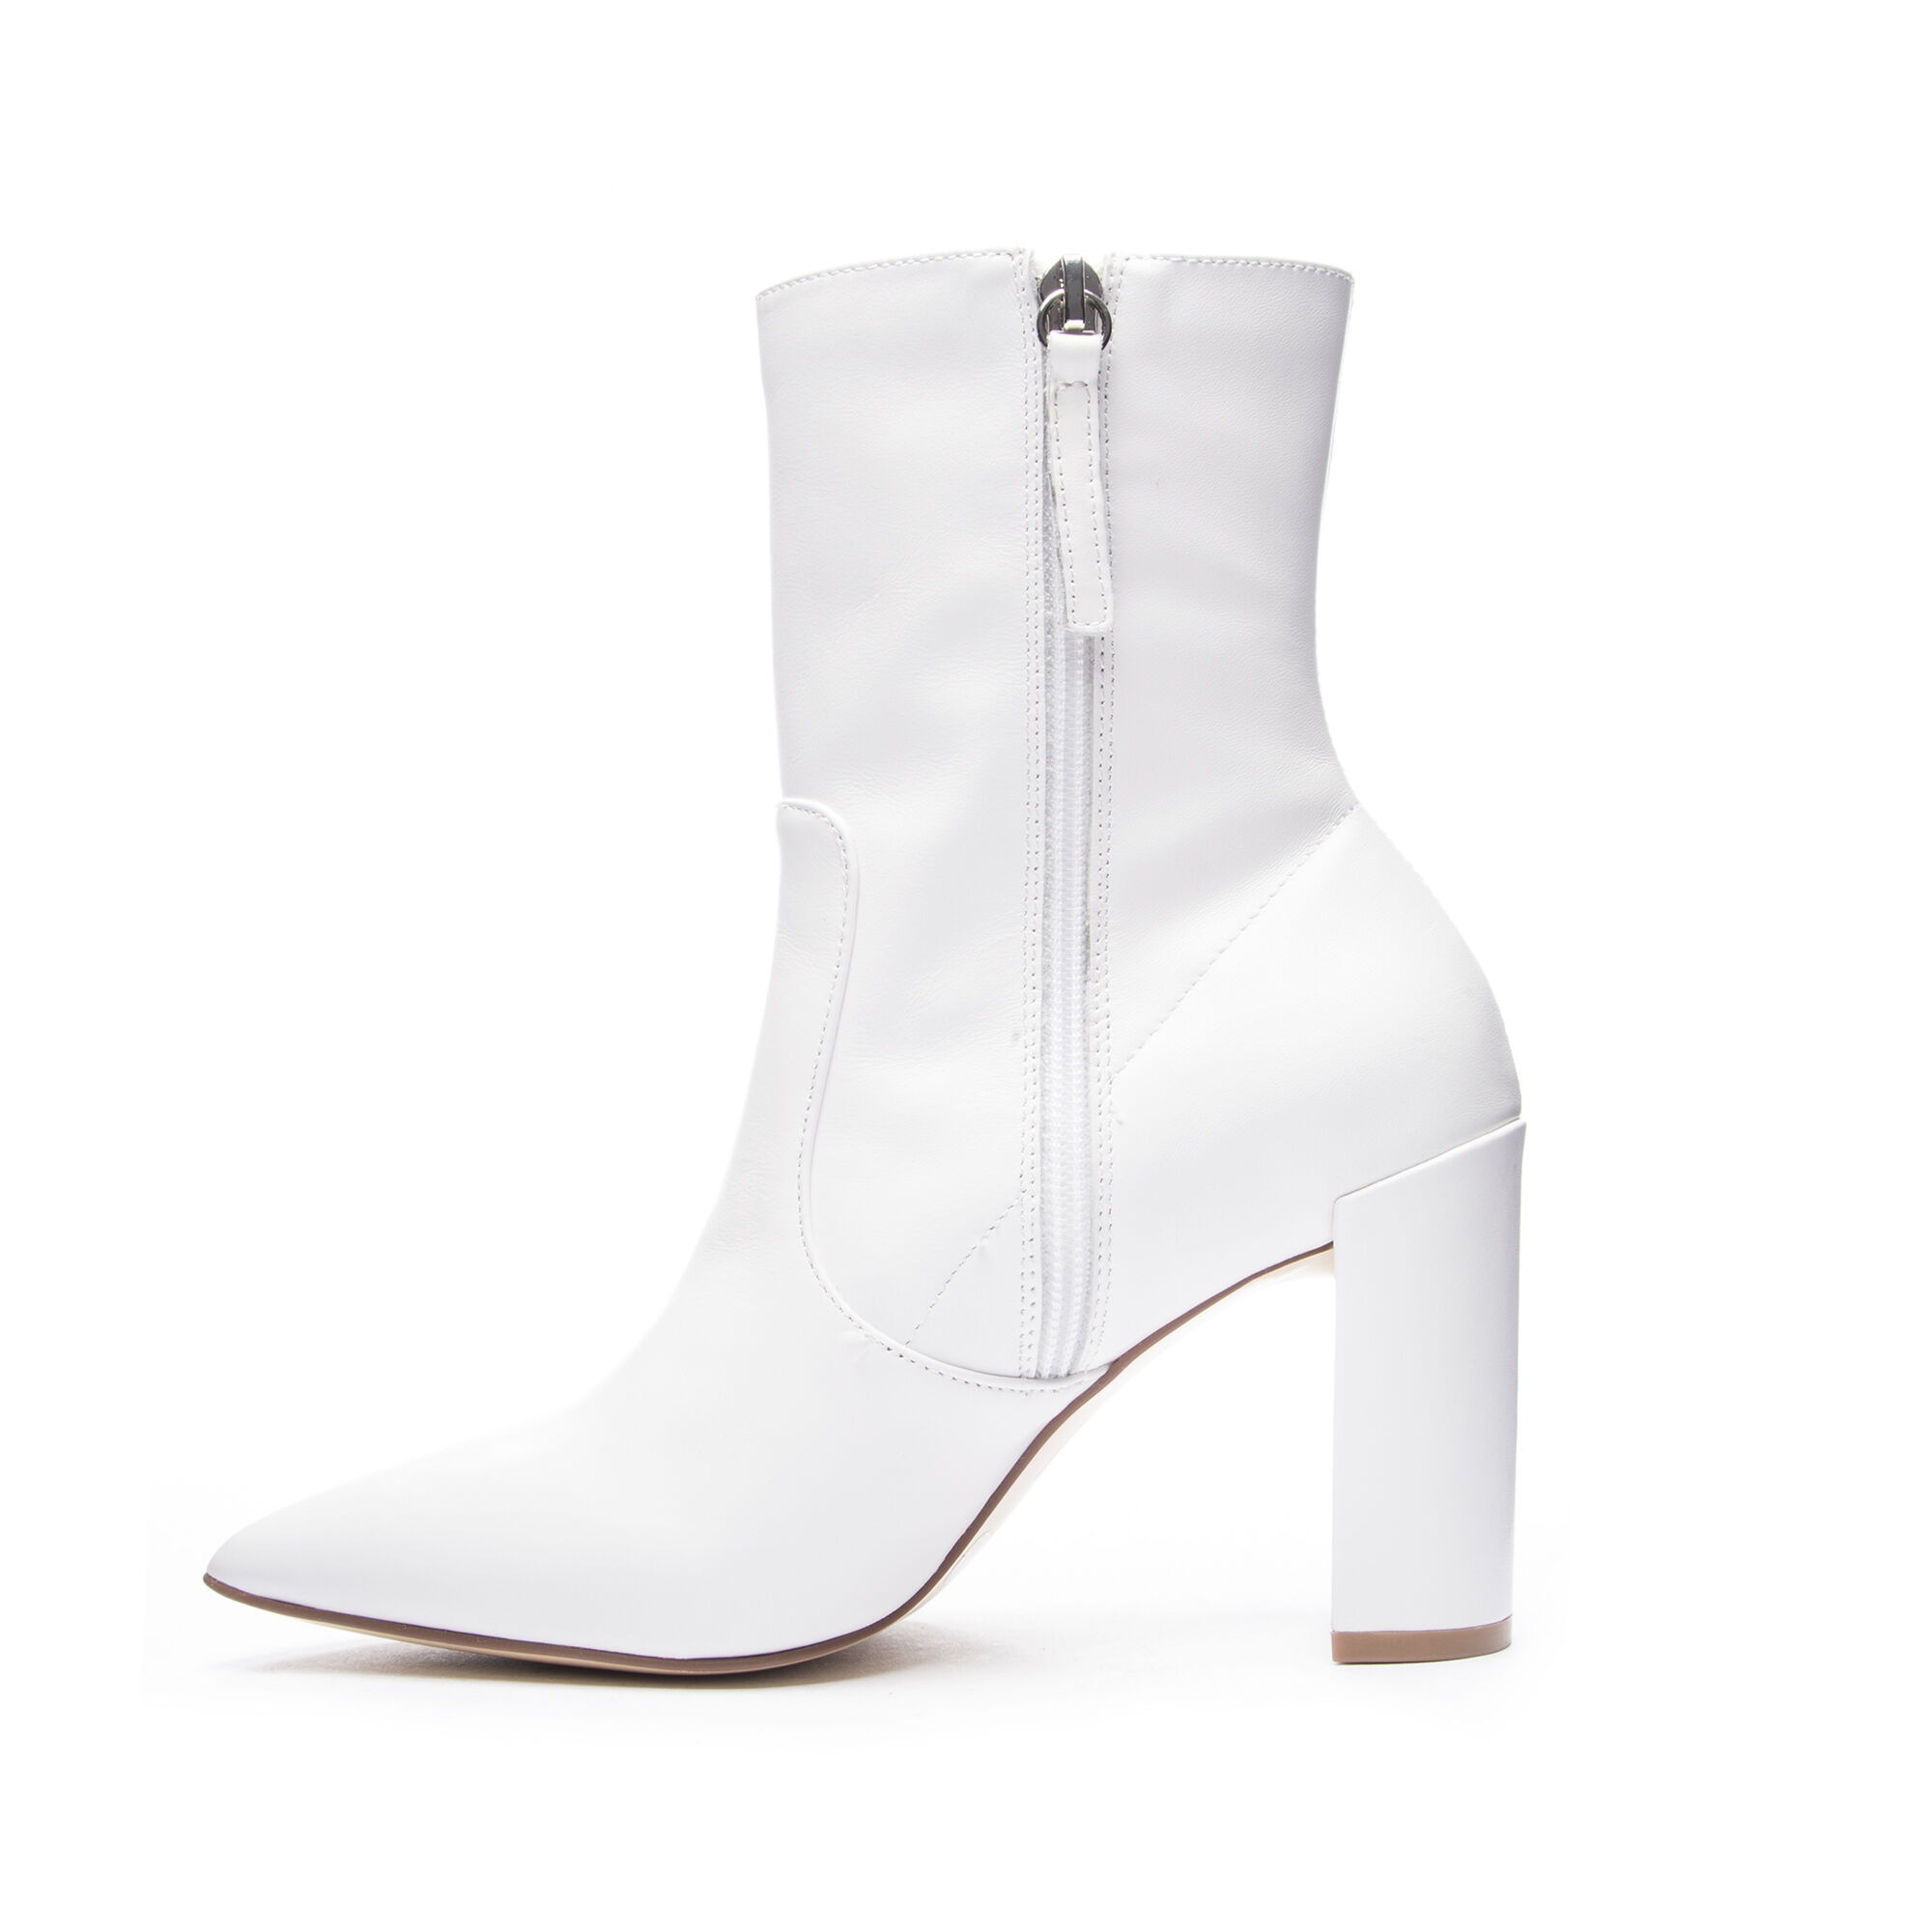 f81ac22dba4 Chinese Laundry Radiant Smooth Leather Bootie